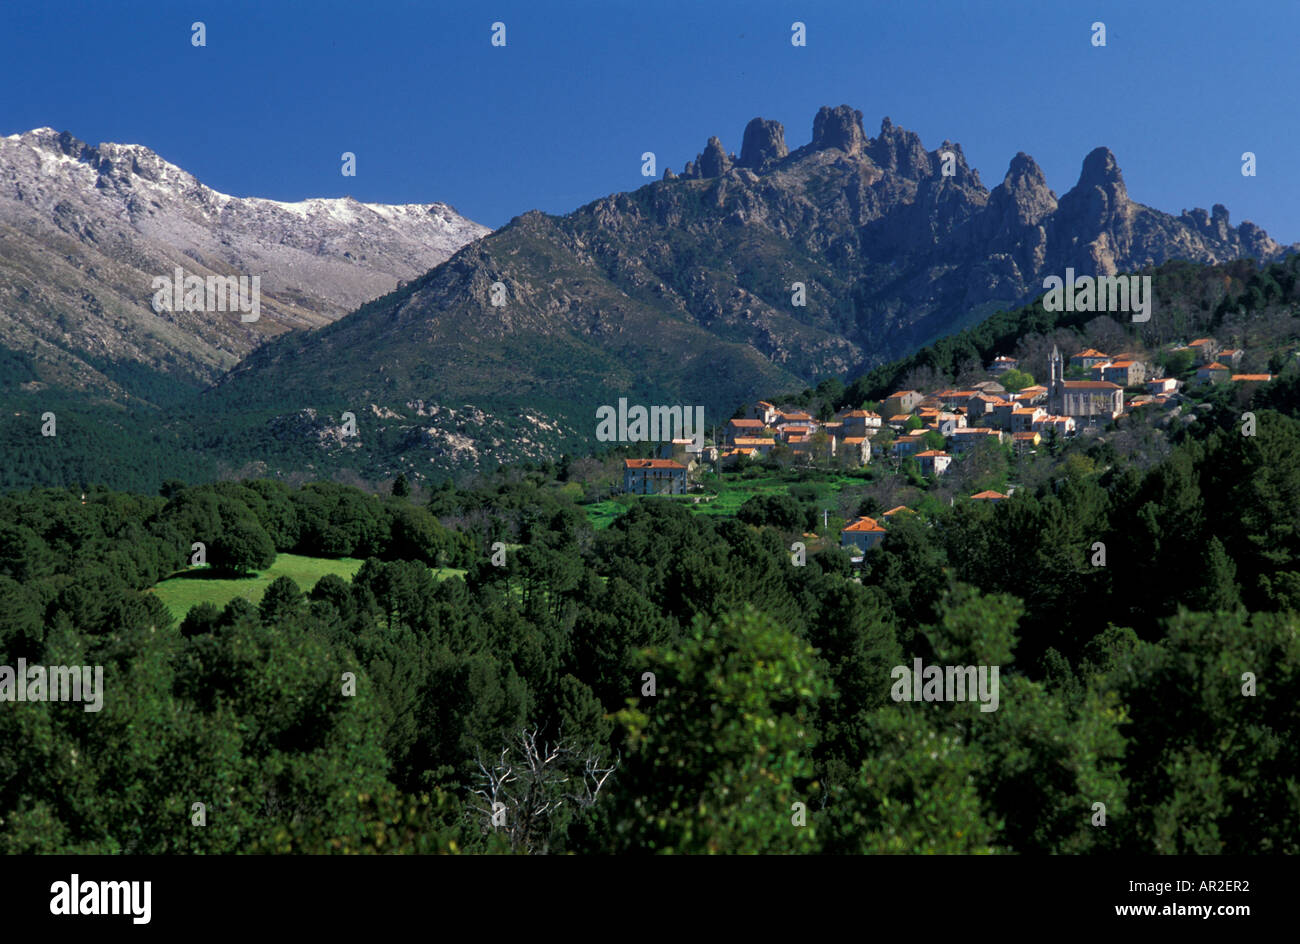 Zonza in front of Bavella and Monte Incudine, Corsica, France Stock Photo